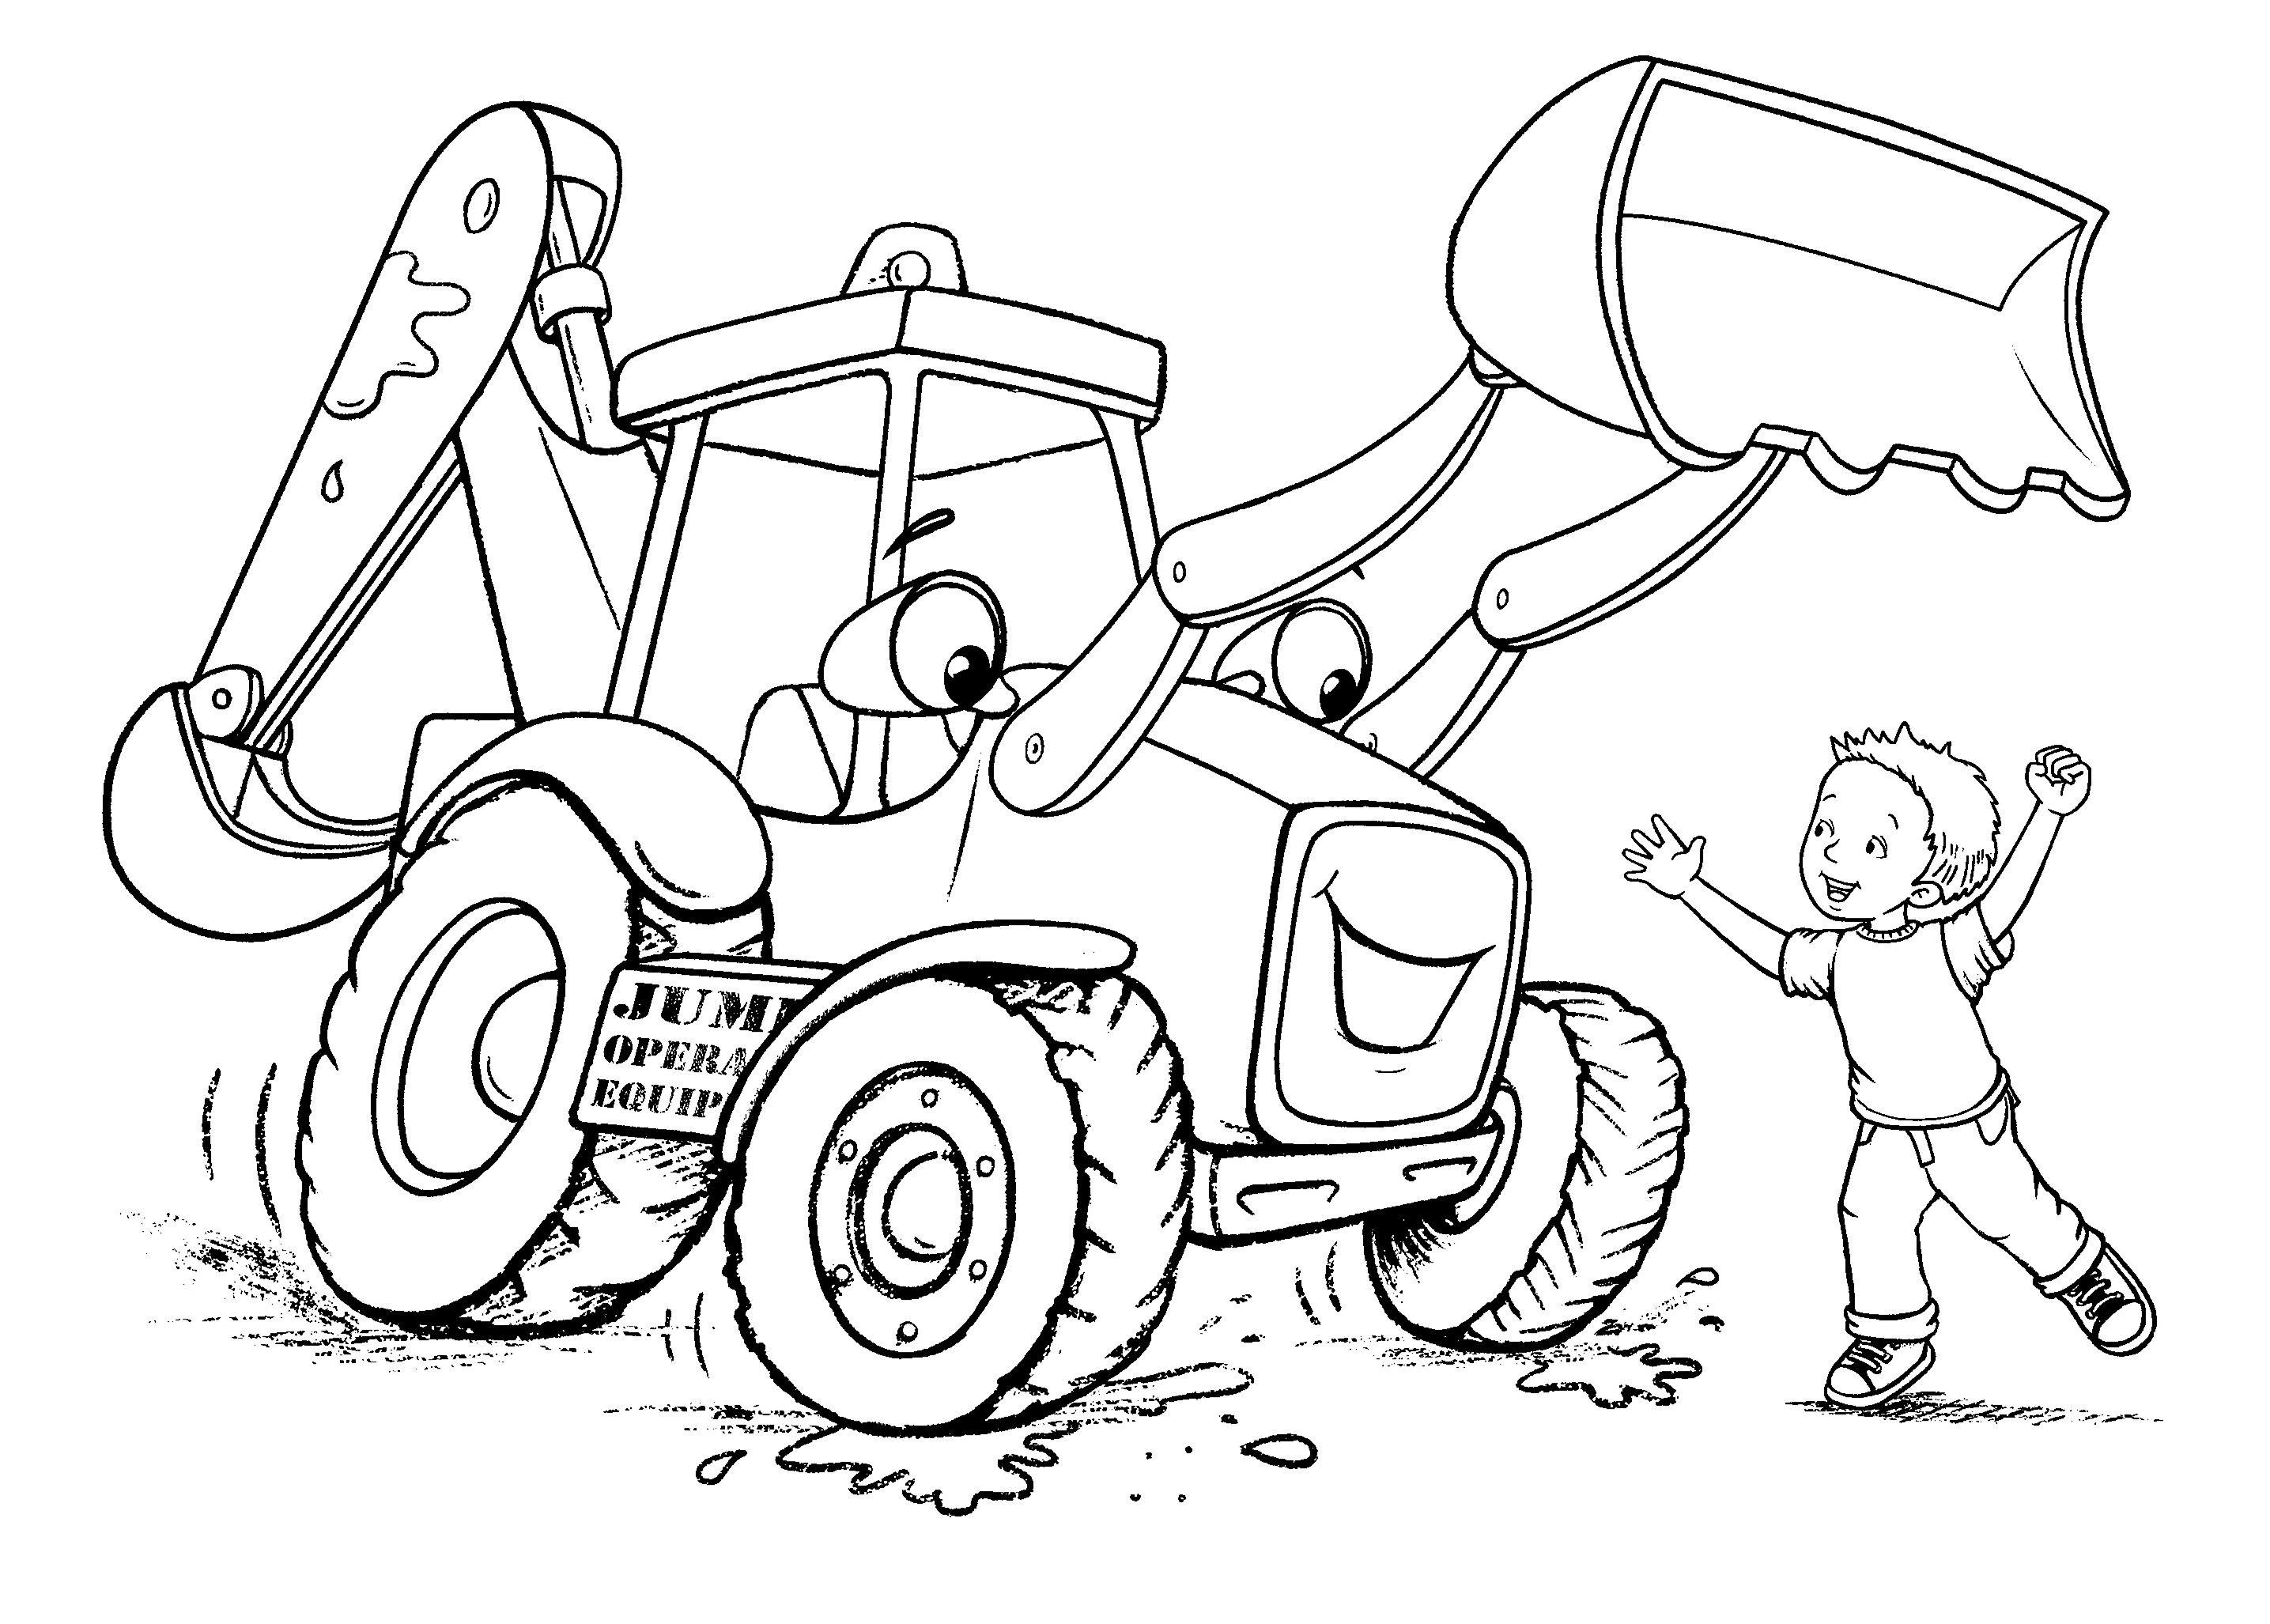 Backhoe Joe Coloring Sheet Coloring Pages Coloring Sheets Color